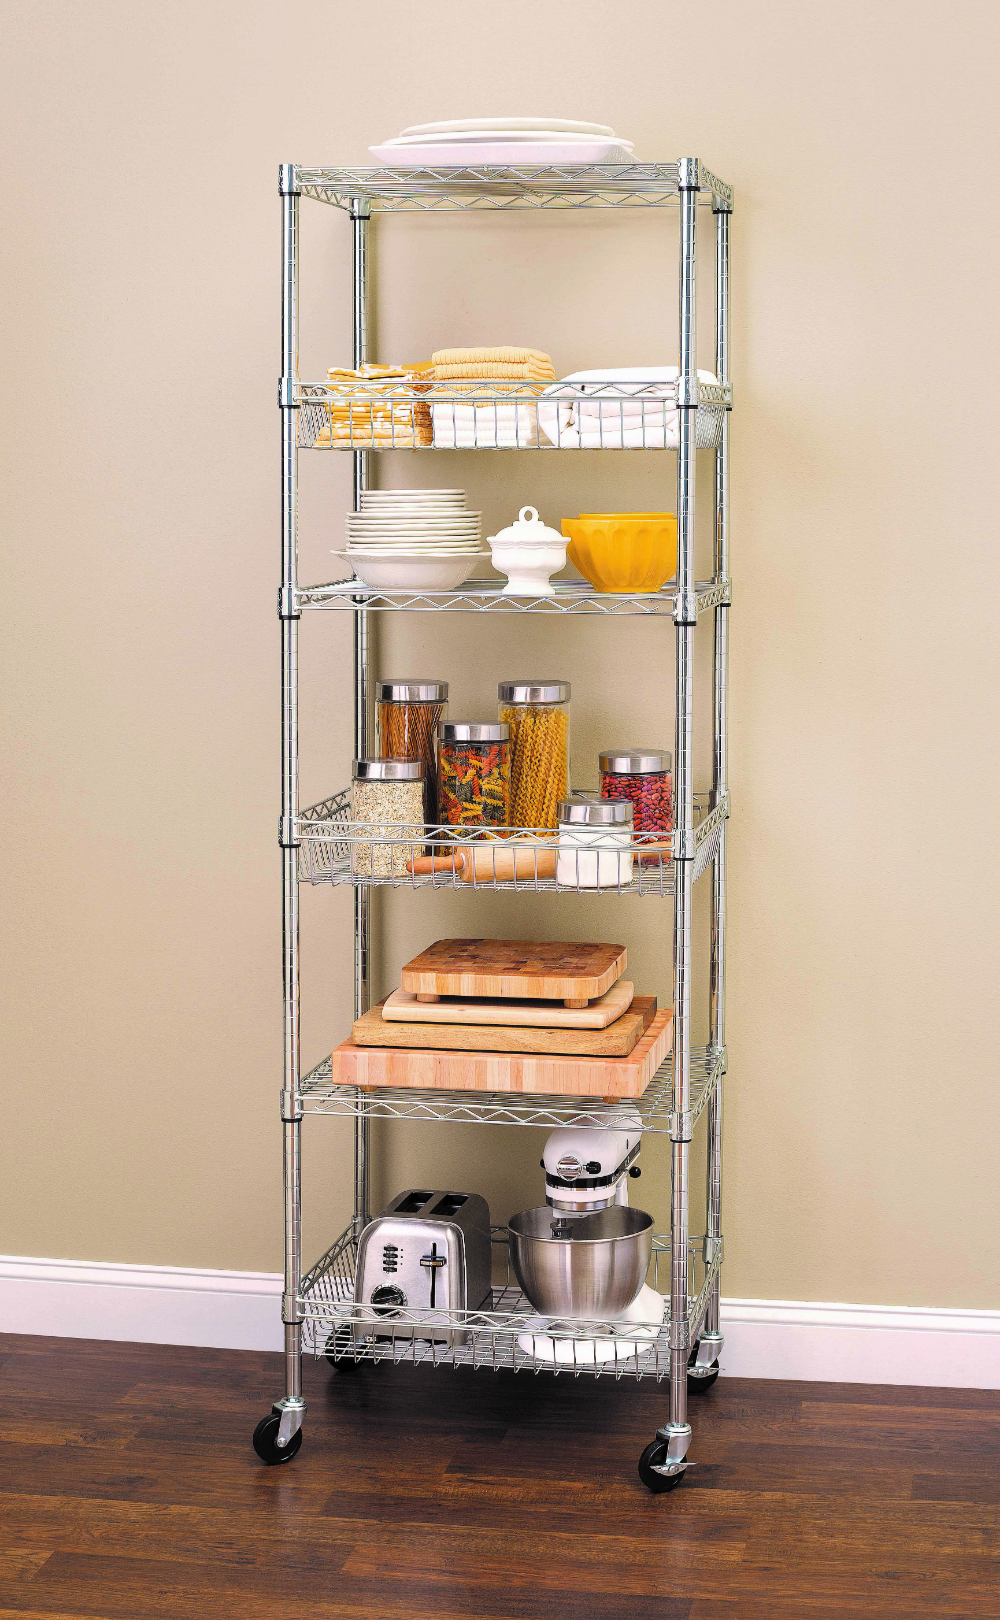 Hss 18 Dx24 Wx75 H 6 Tier Wire Shelving Tower Rack With Casters Chrome Walmart Com Kitchen Appliance Storage Appliances Storage Kitchen Rack